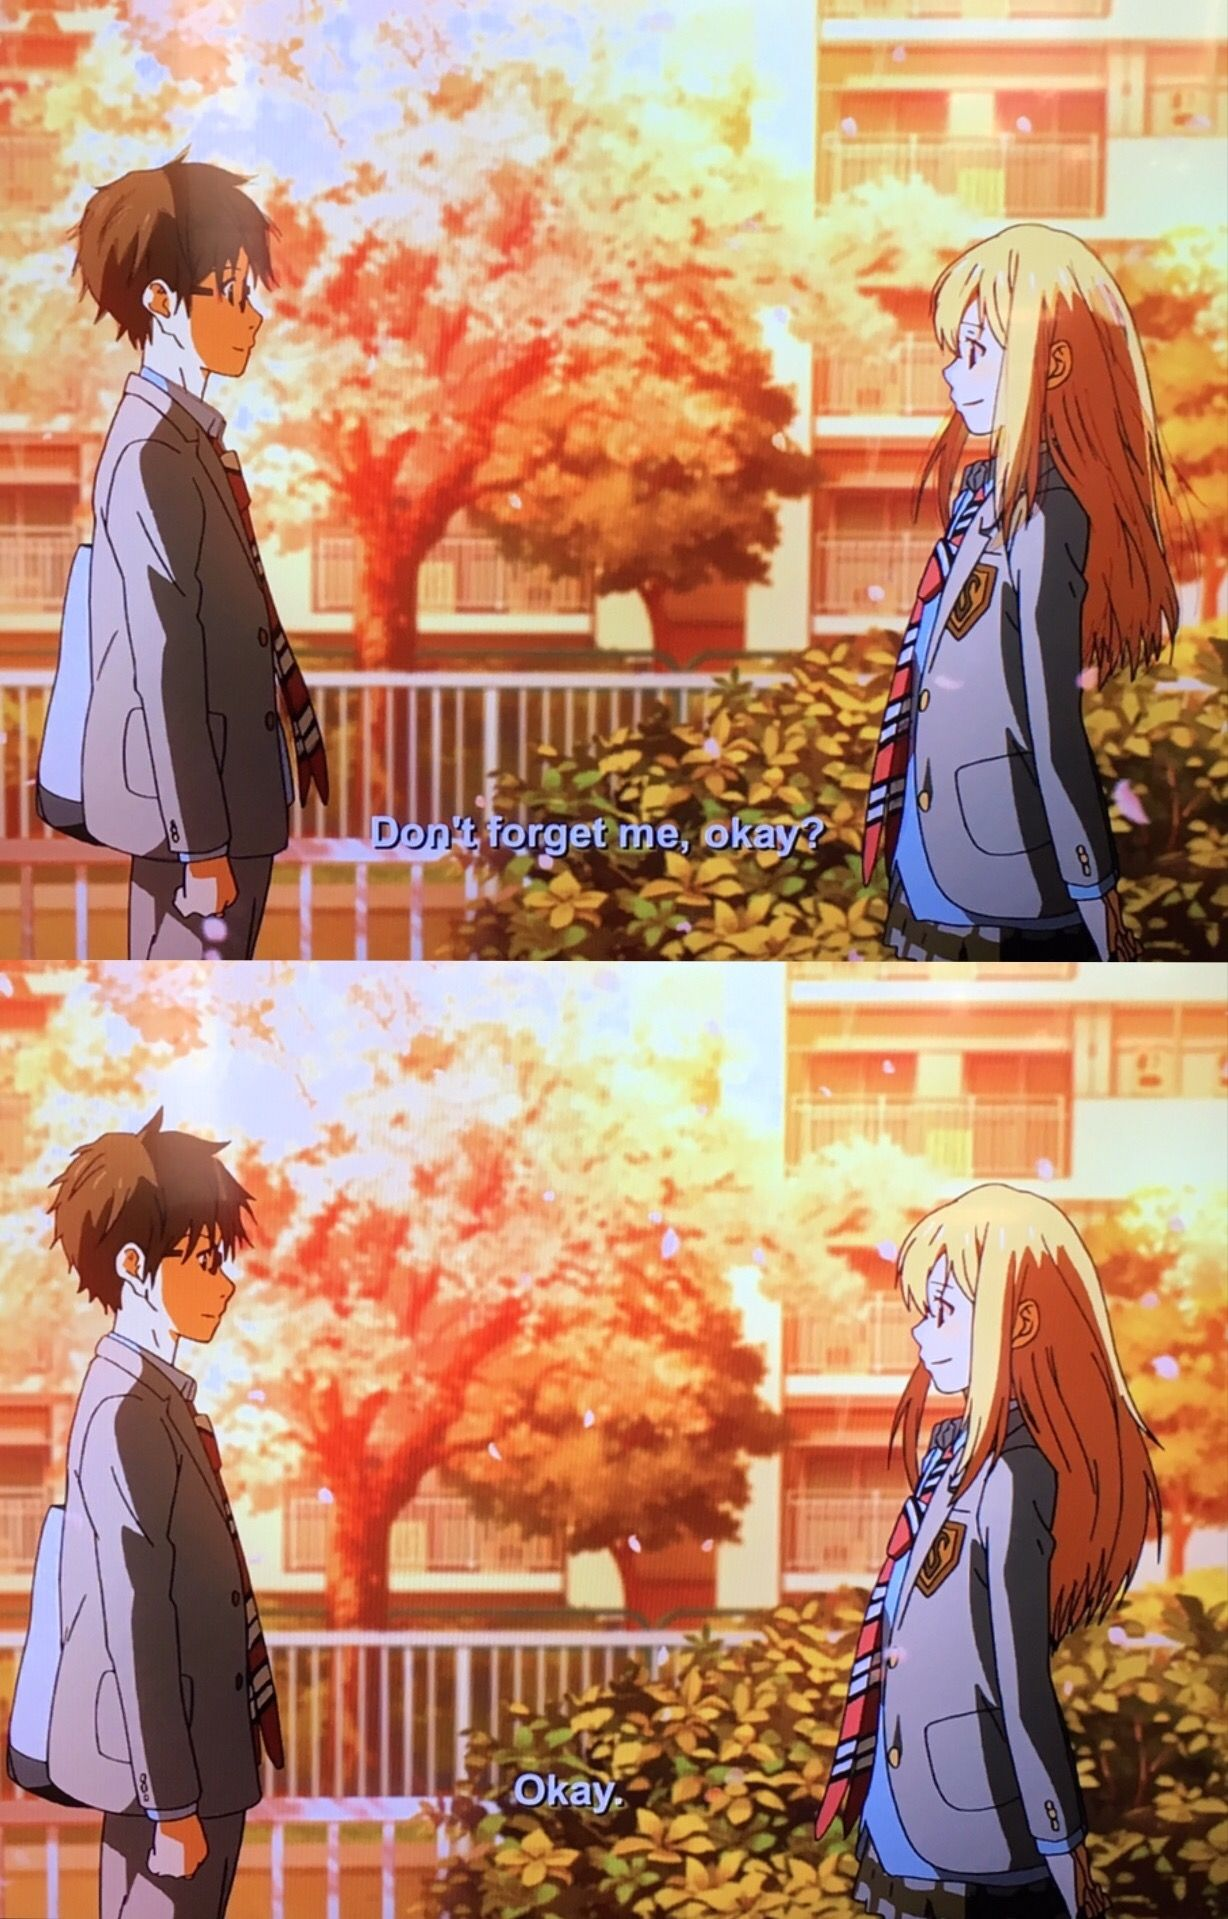 Your Lie In April Your Lie In April Aesthetic Anime Anime Wallpaper